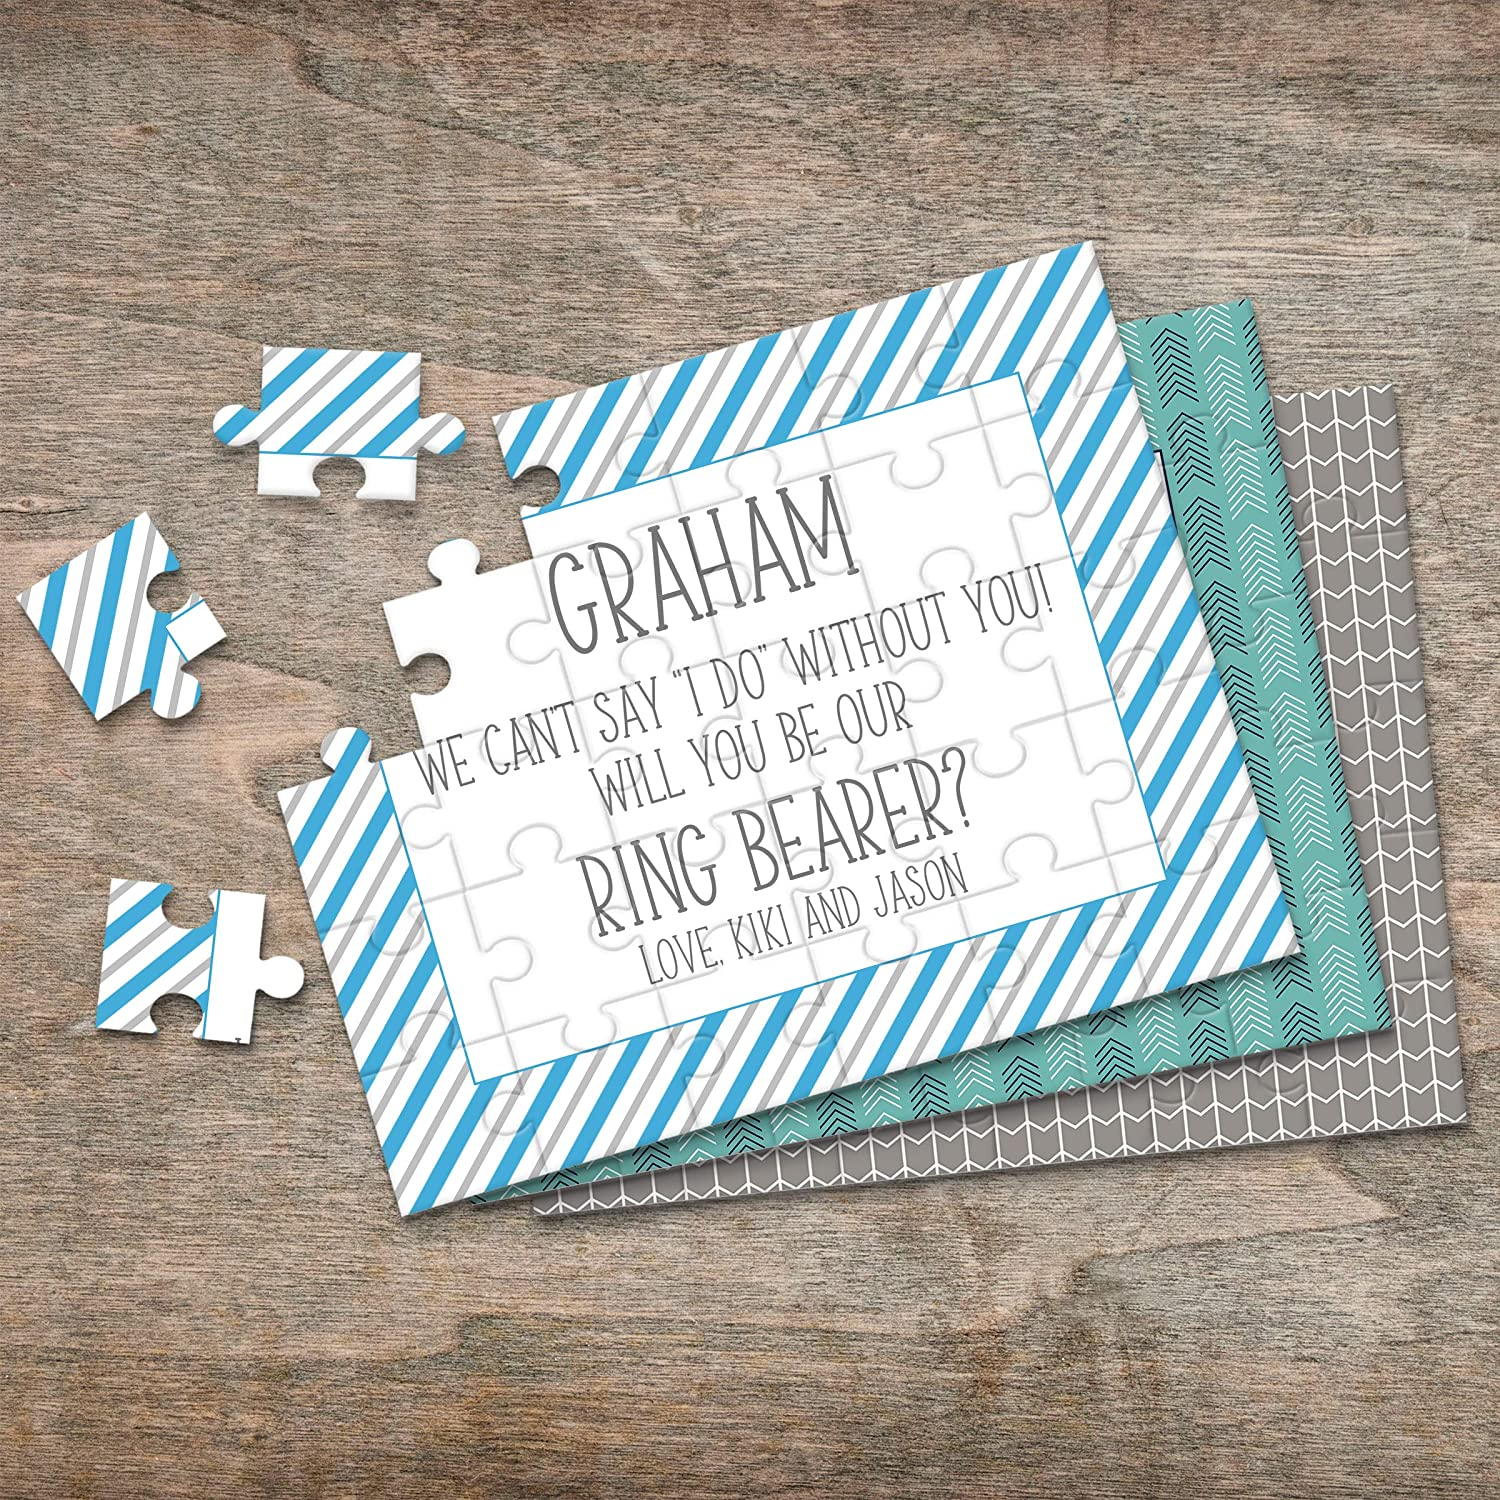 Bridal Party Reveal Puzzle Proposal P2345 Wedding Announcement Asking Ring Bearer Personalized Ring Bearer Puzzle P2331